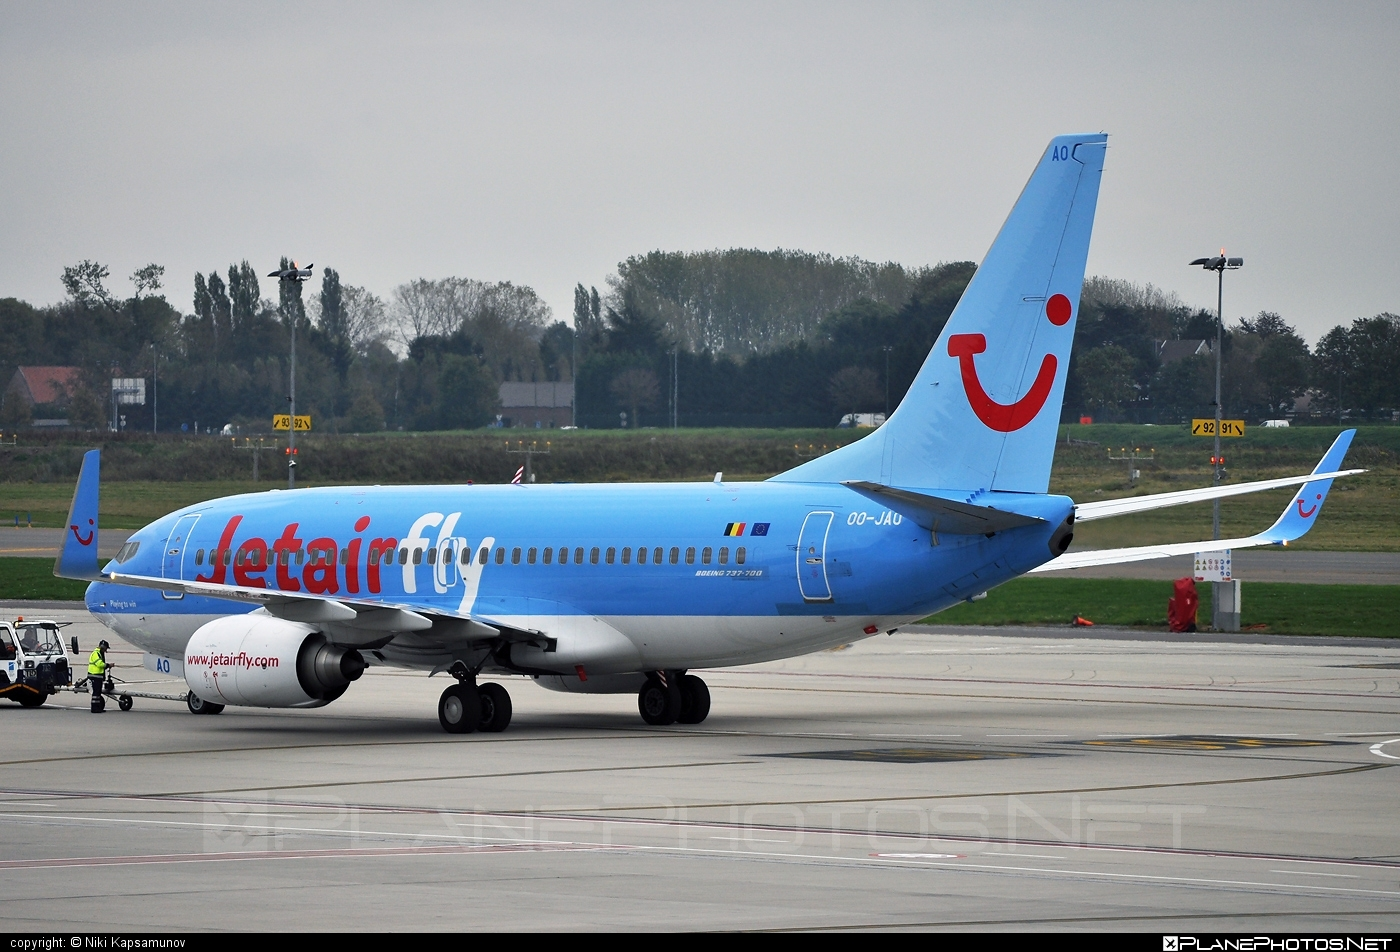 Boeing 737-700 - OO-JAO operated by Jetairfly #b737 #b737nextgen #b737ng #boeing #boeing737 #jetairfly